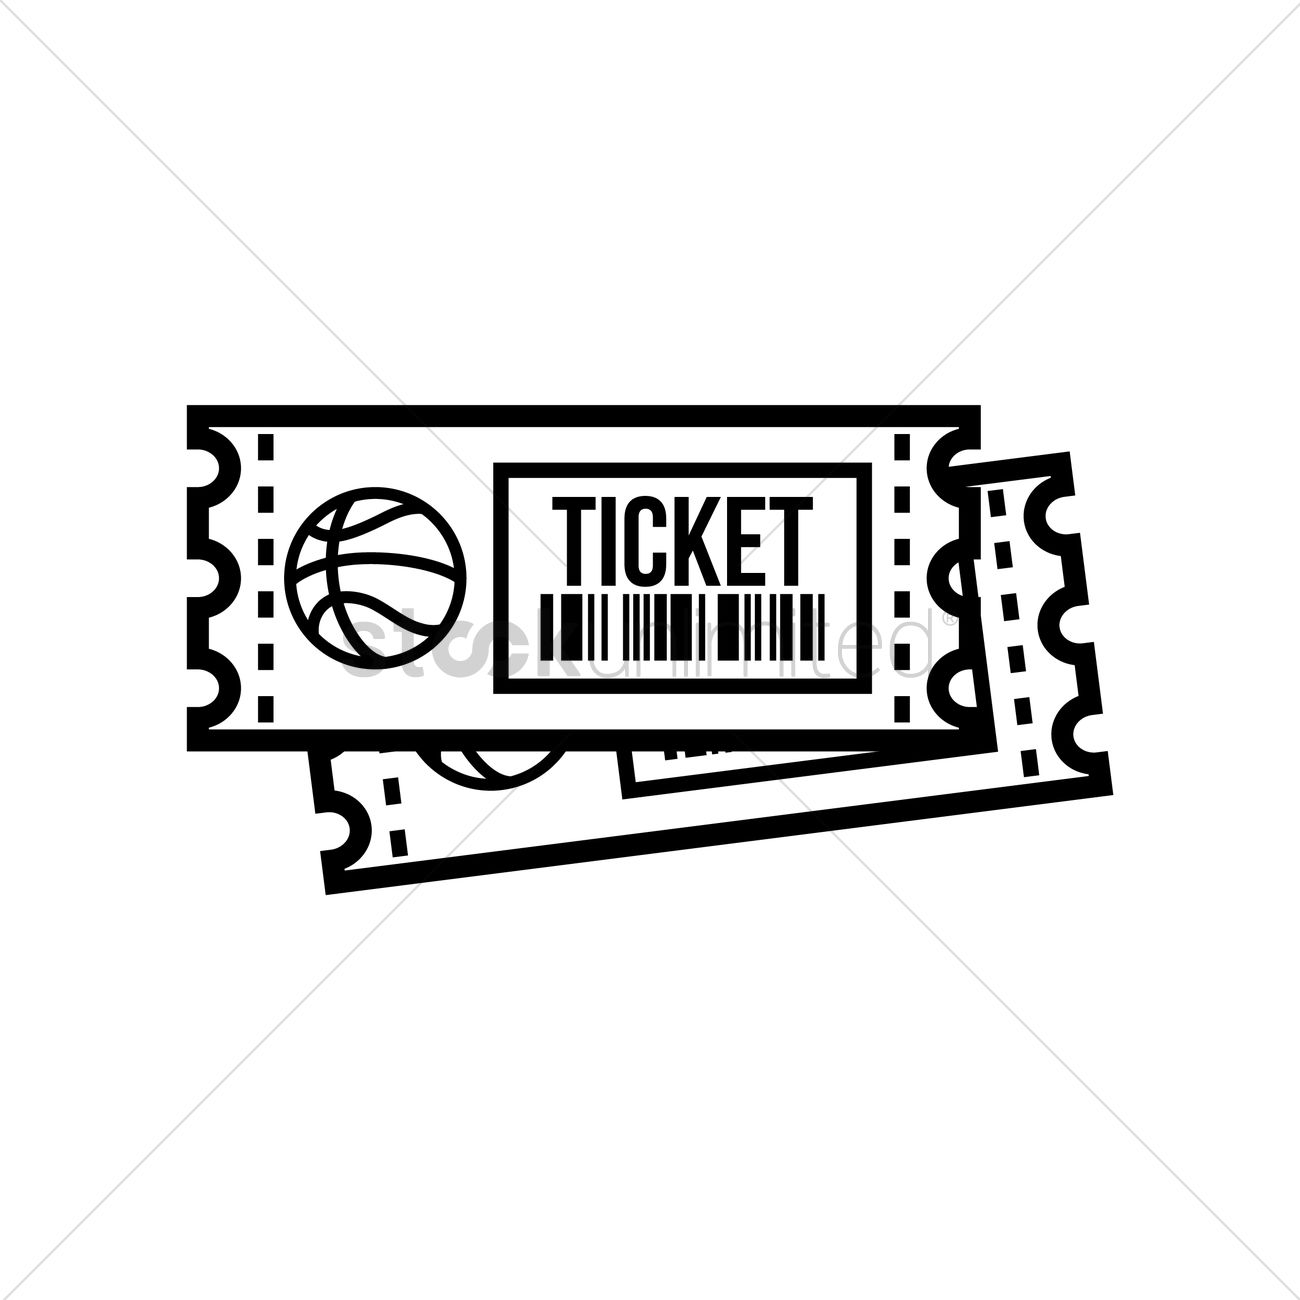 Basketball Ticket Vector Image